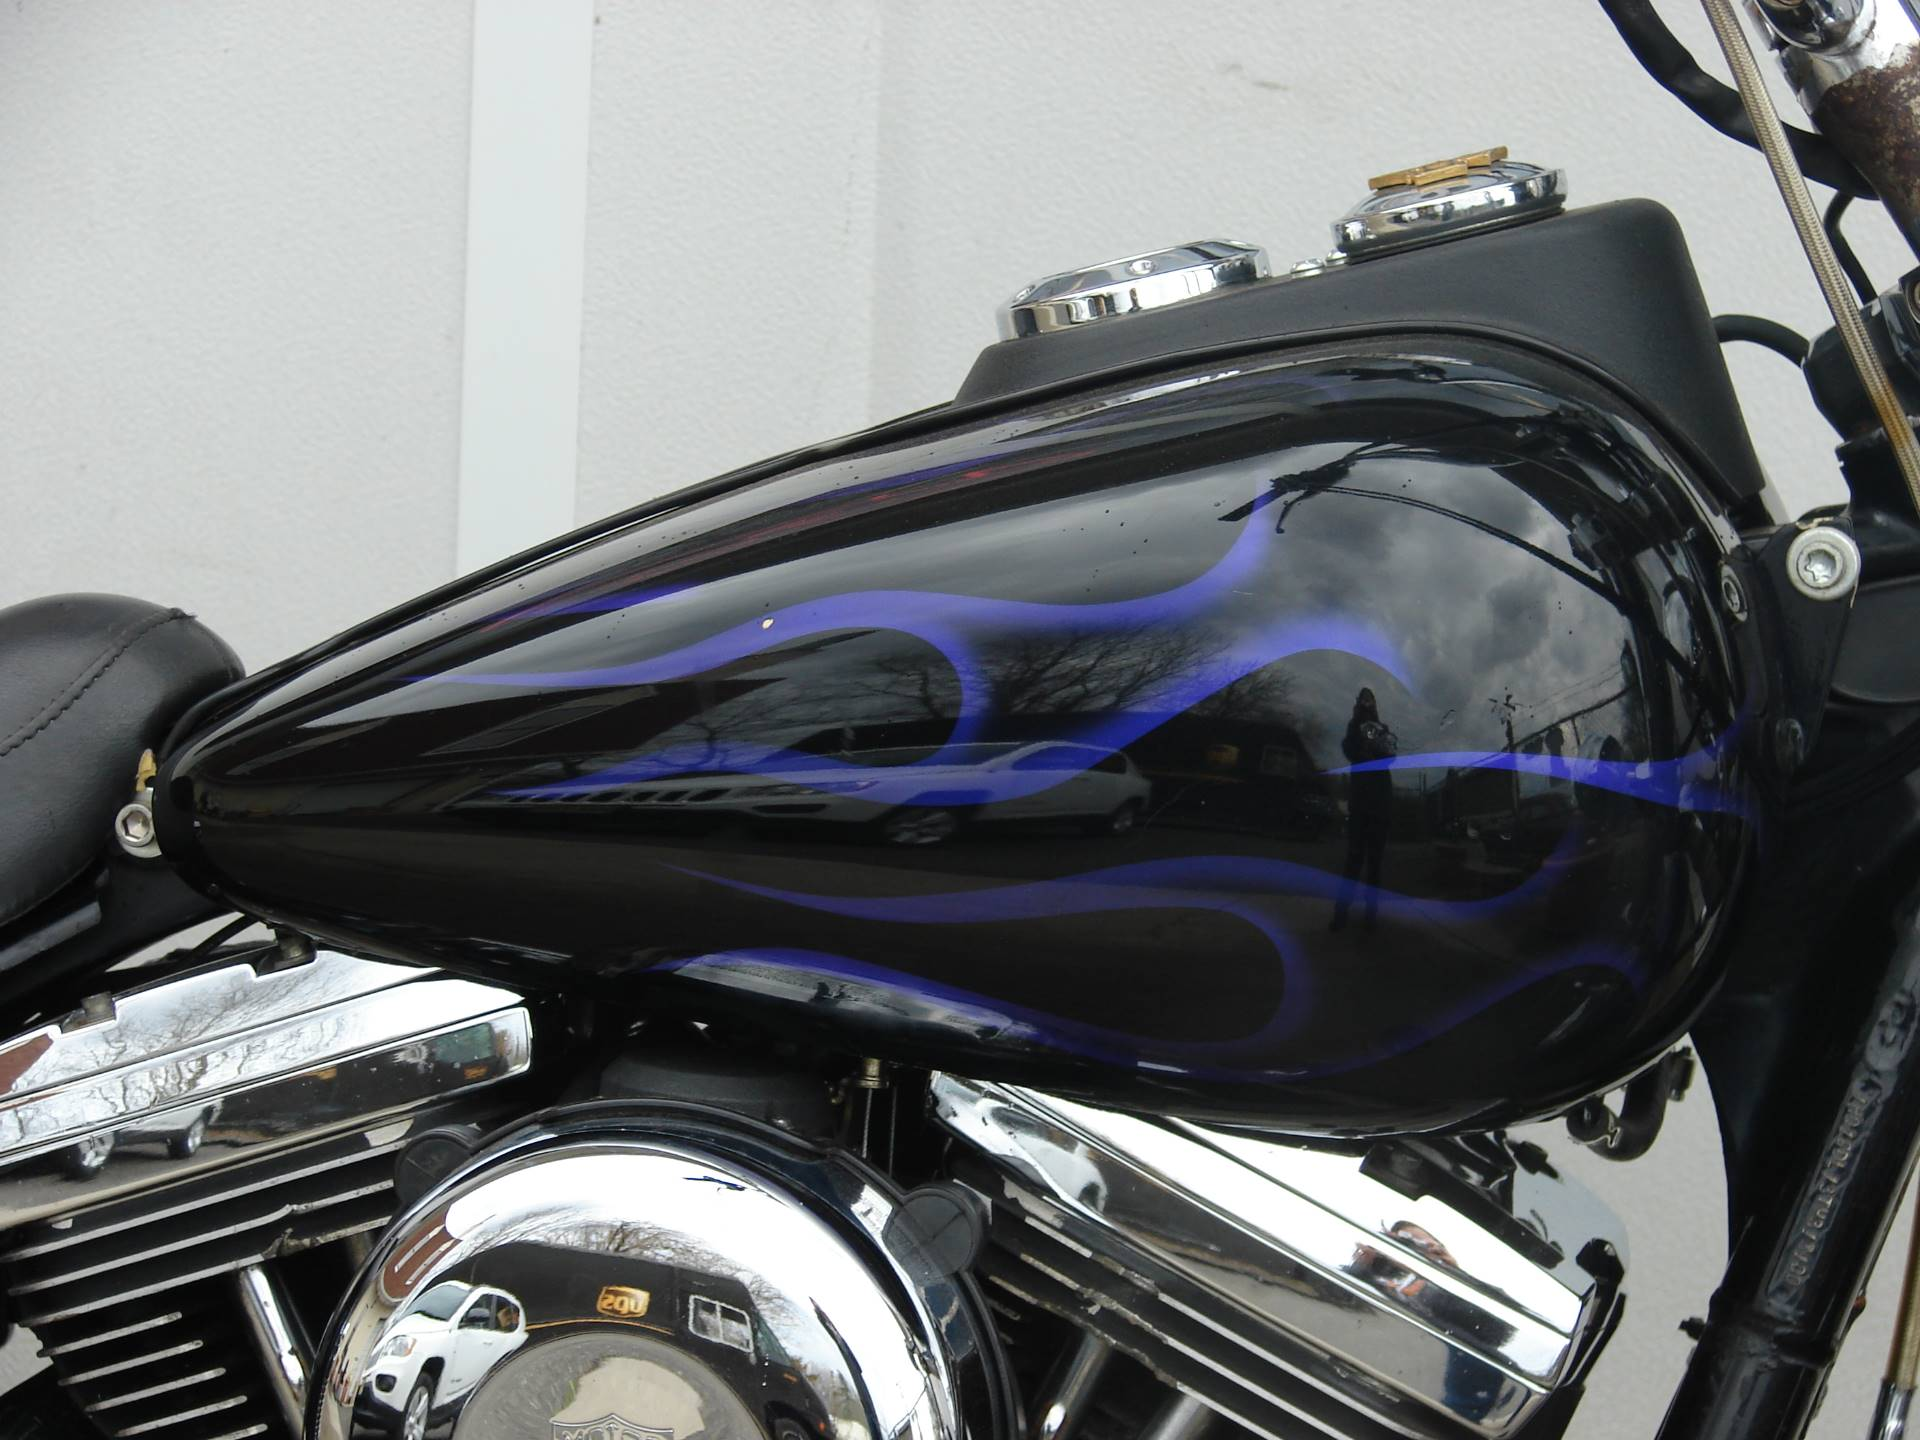 1996 Harley-Davidson Dyna Glide FXD  (w/ Wide Conversion) in Williamstown, New Jersey